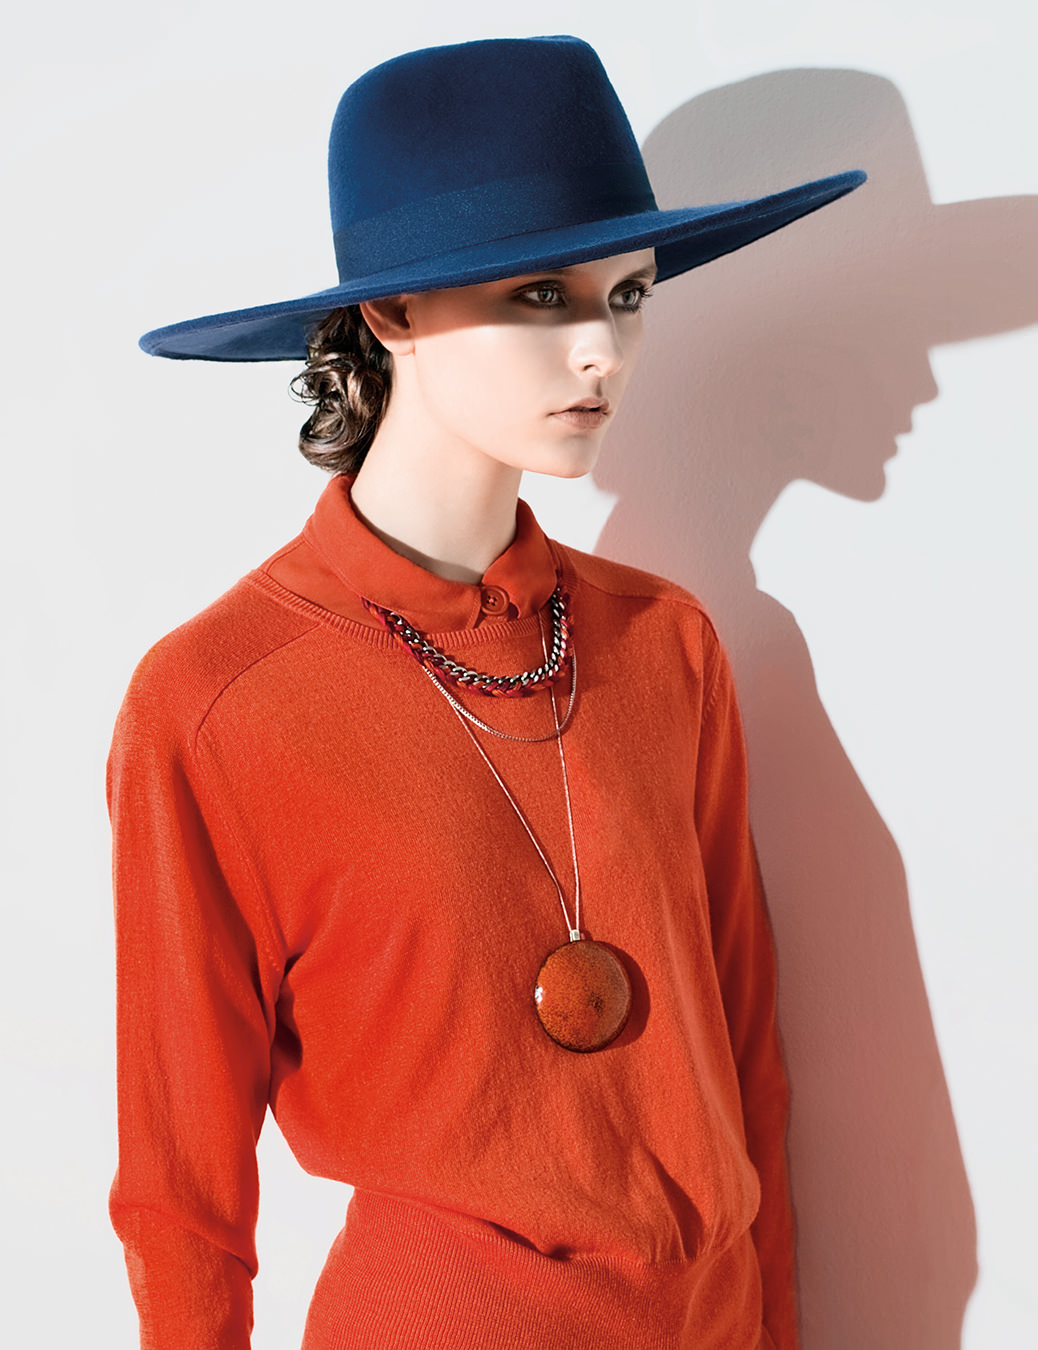 NUVO Magazine: Orange Crush, Spring Fashion